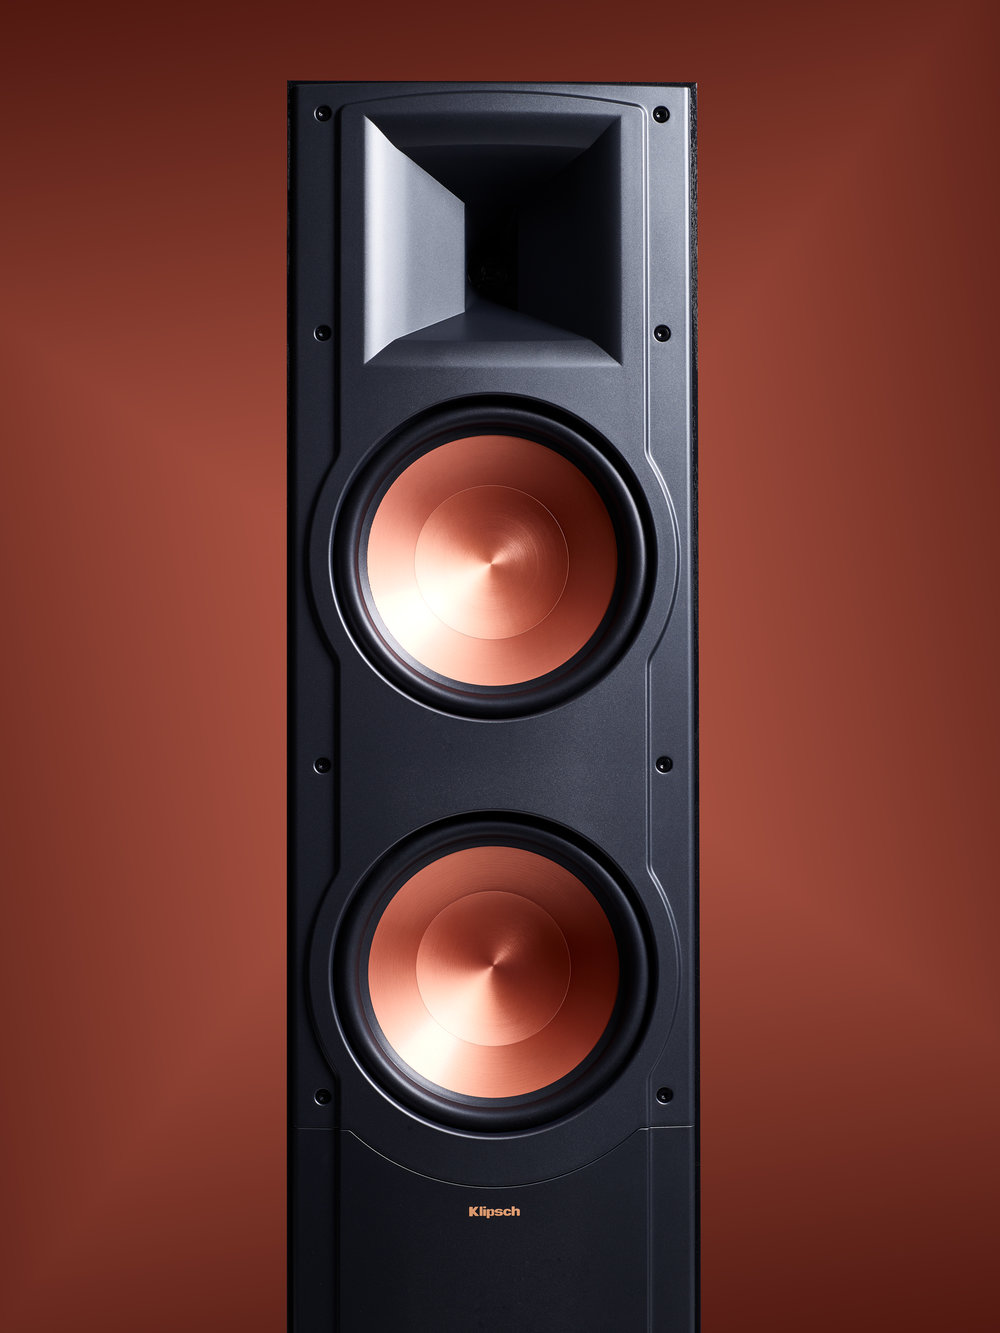 Klipsch Speaker on copper background